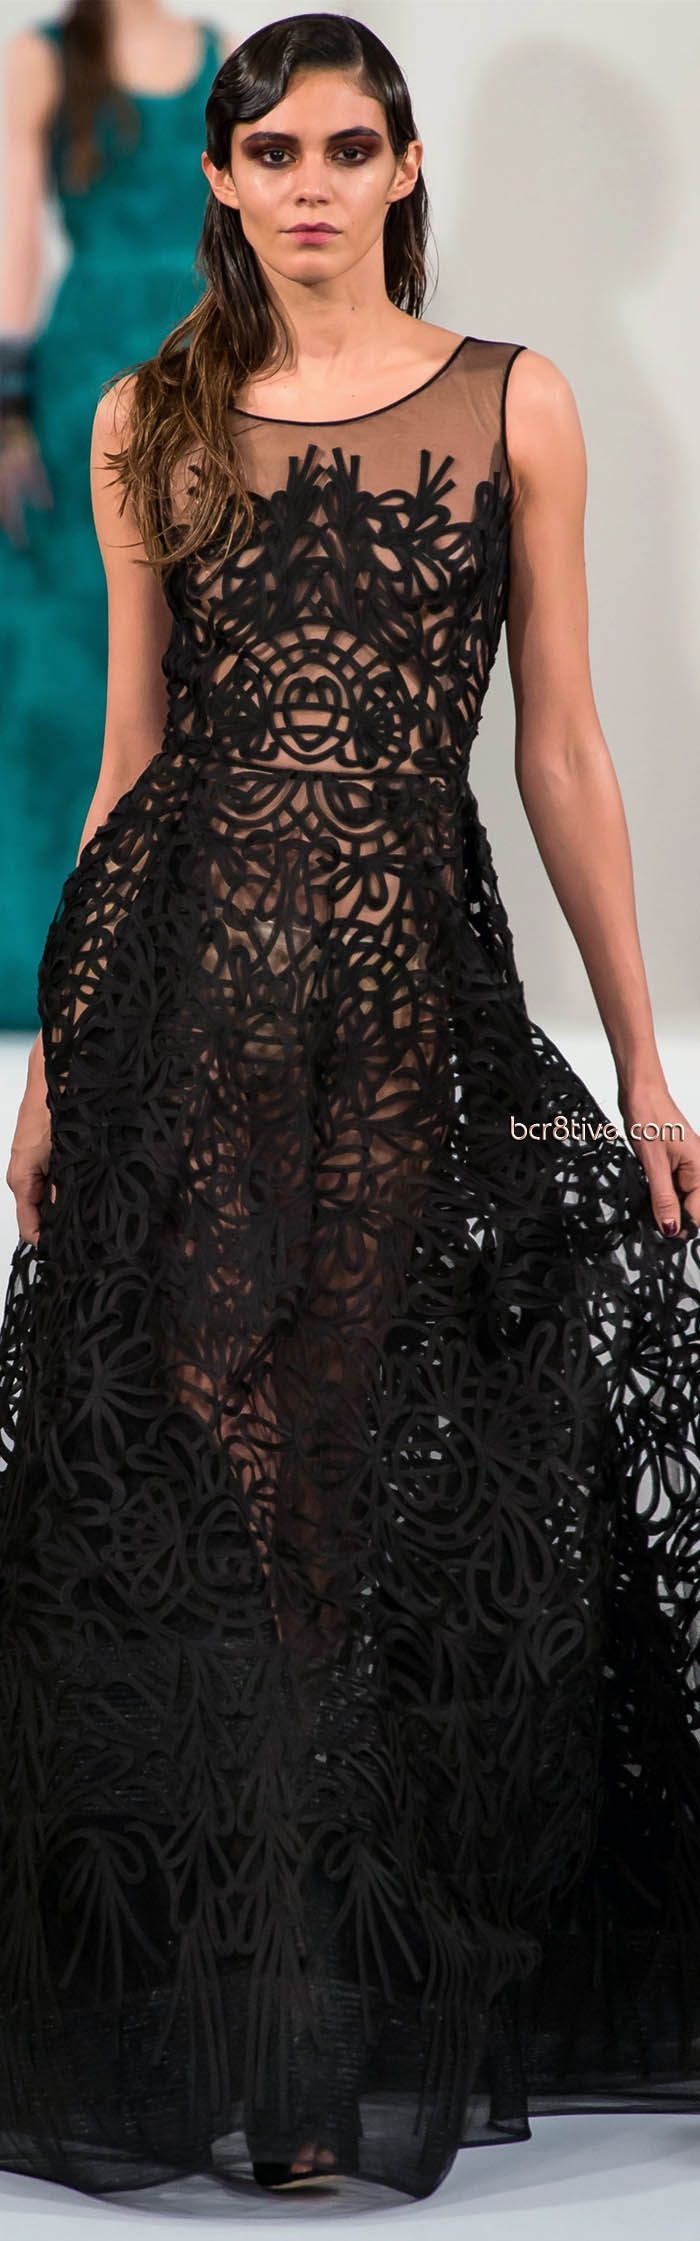 best dresses to leave you breathless images on pinterest cute